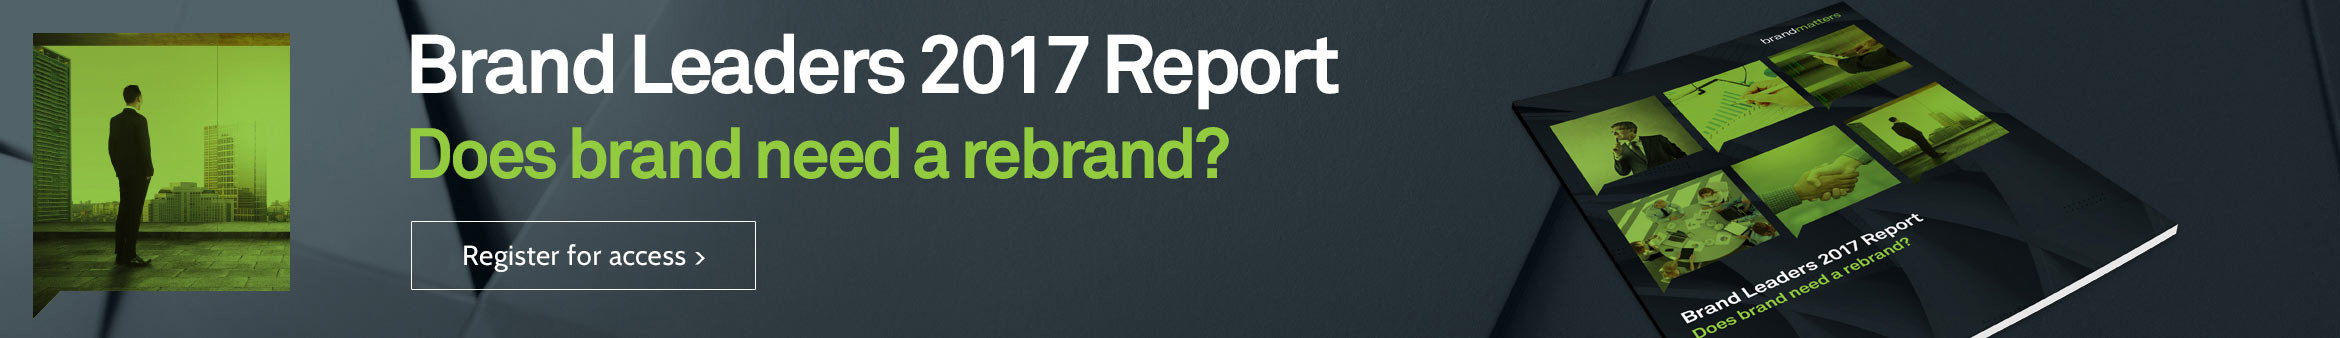 Brand Leaders 2017 Report Heading Banner